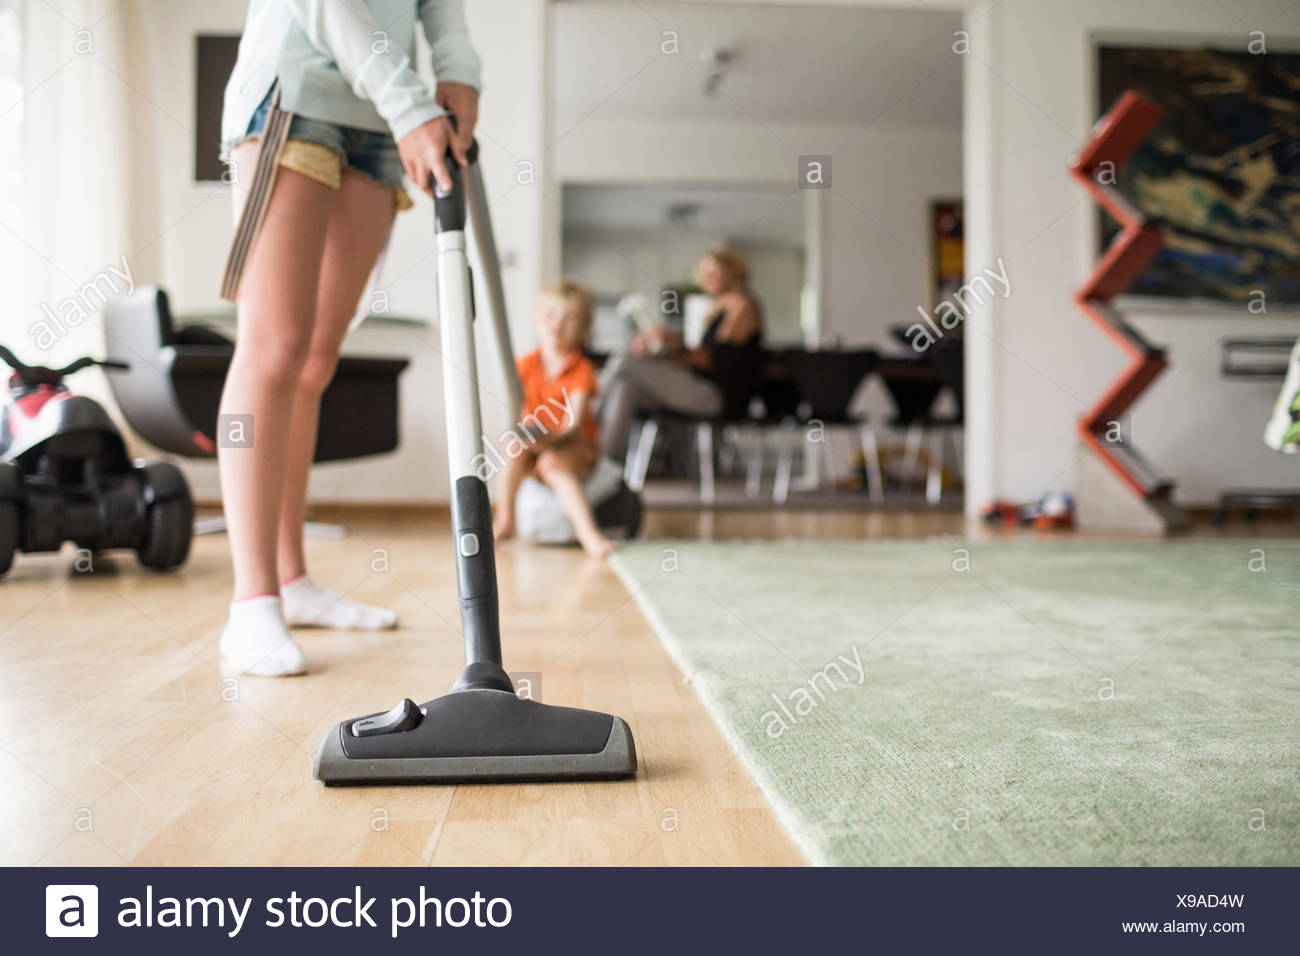 Low section of girl cleaning floor with vacuum cleaner at home - Stock Image